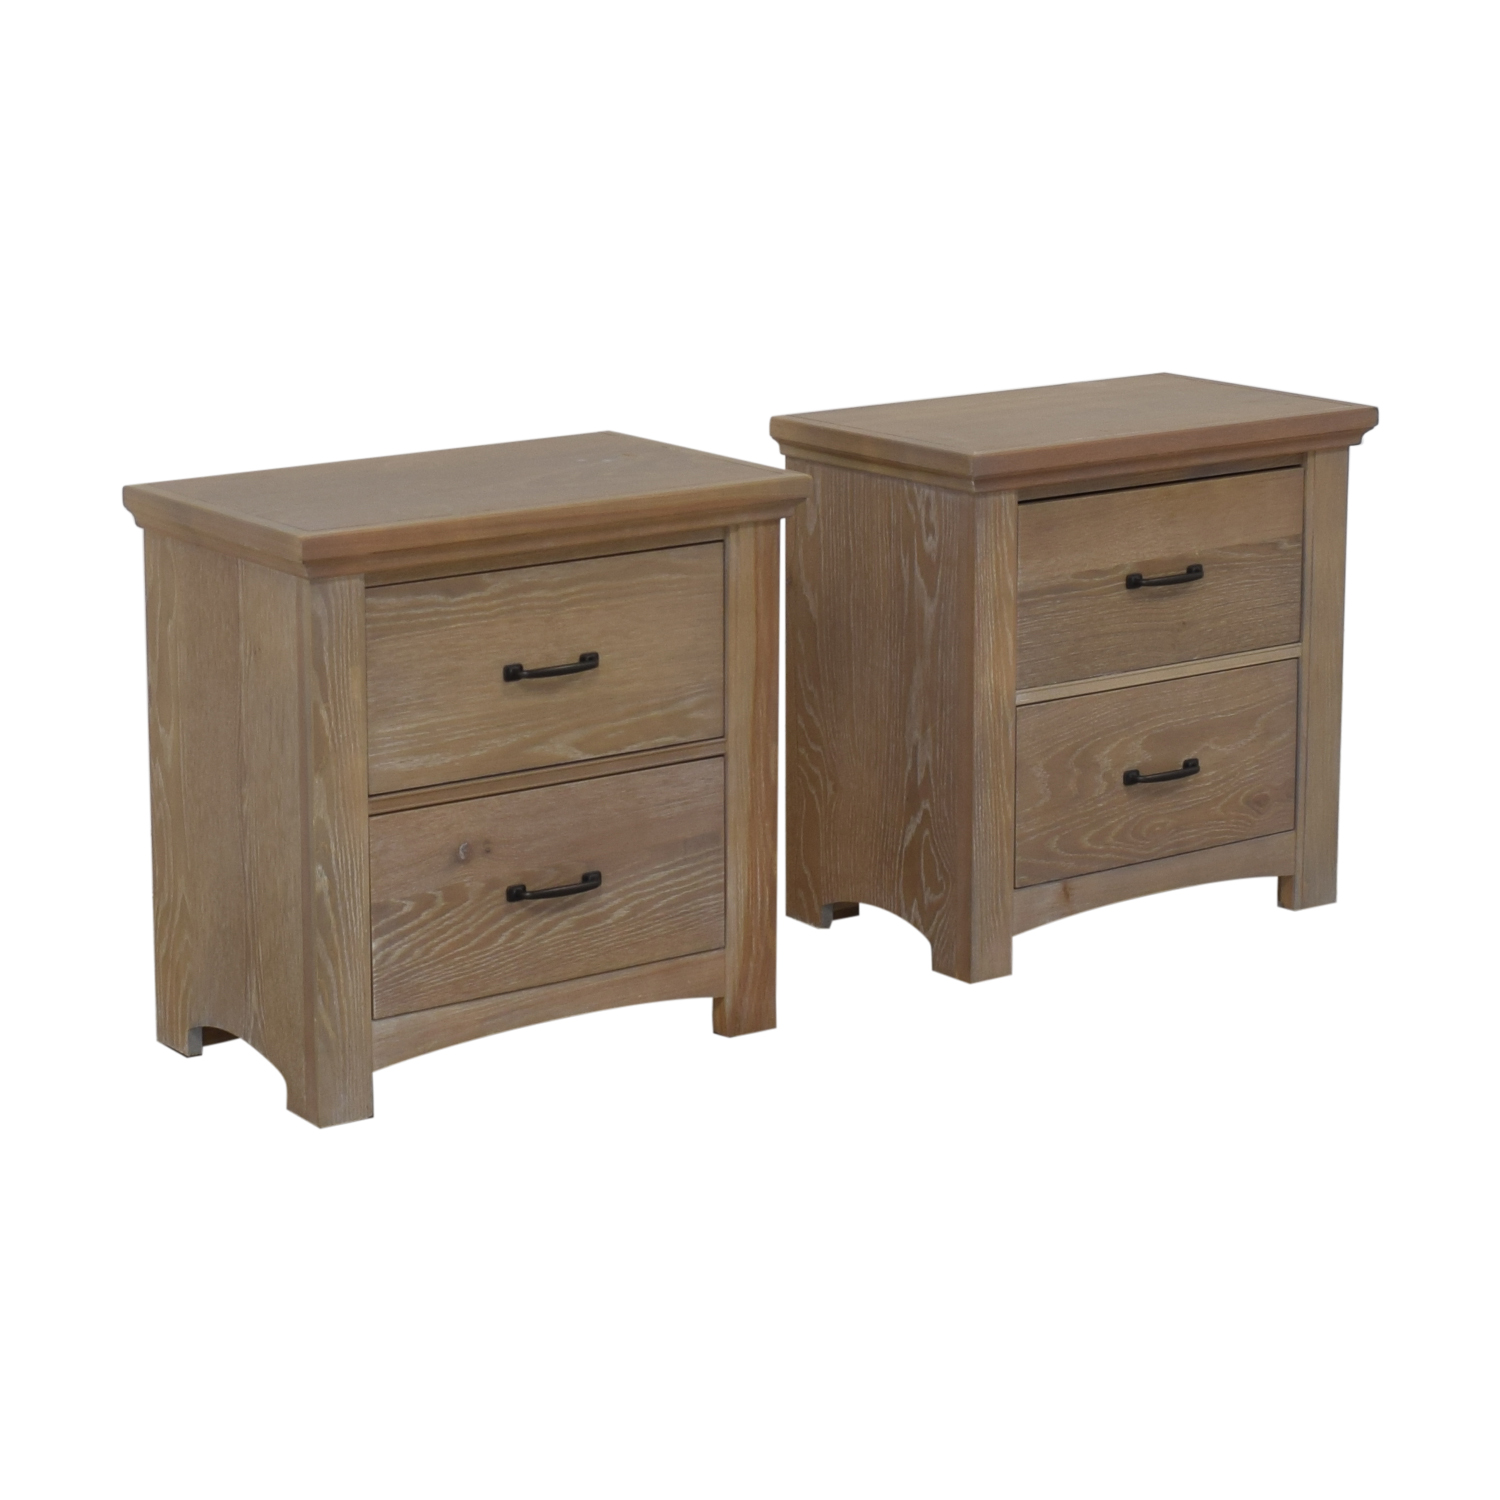 Vaughan-Bassett Vaughan-Basset Transitions Two Drawer Nightstands End Tables